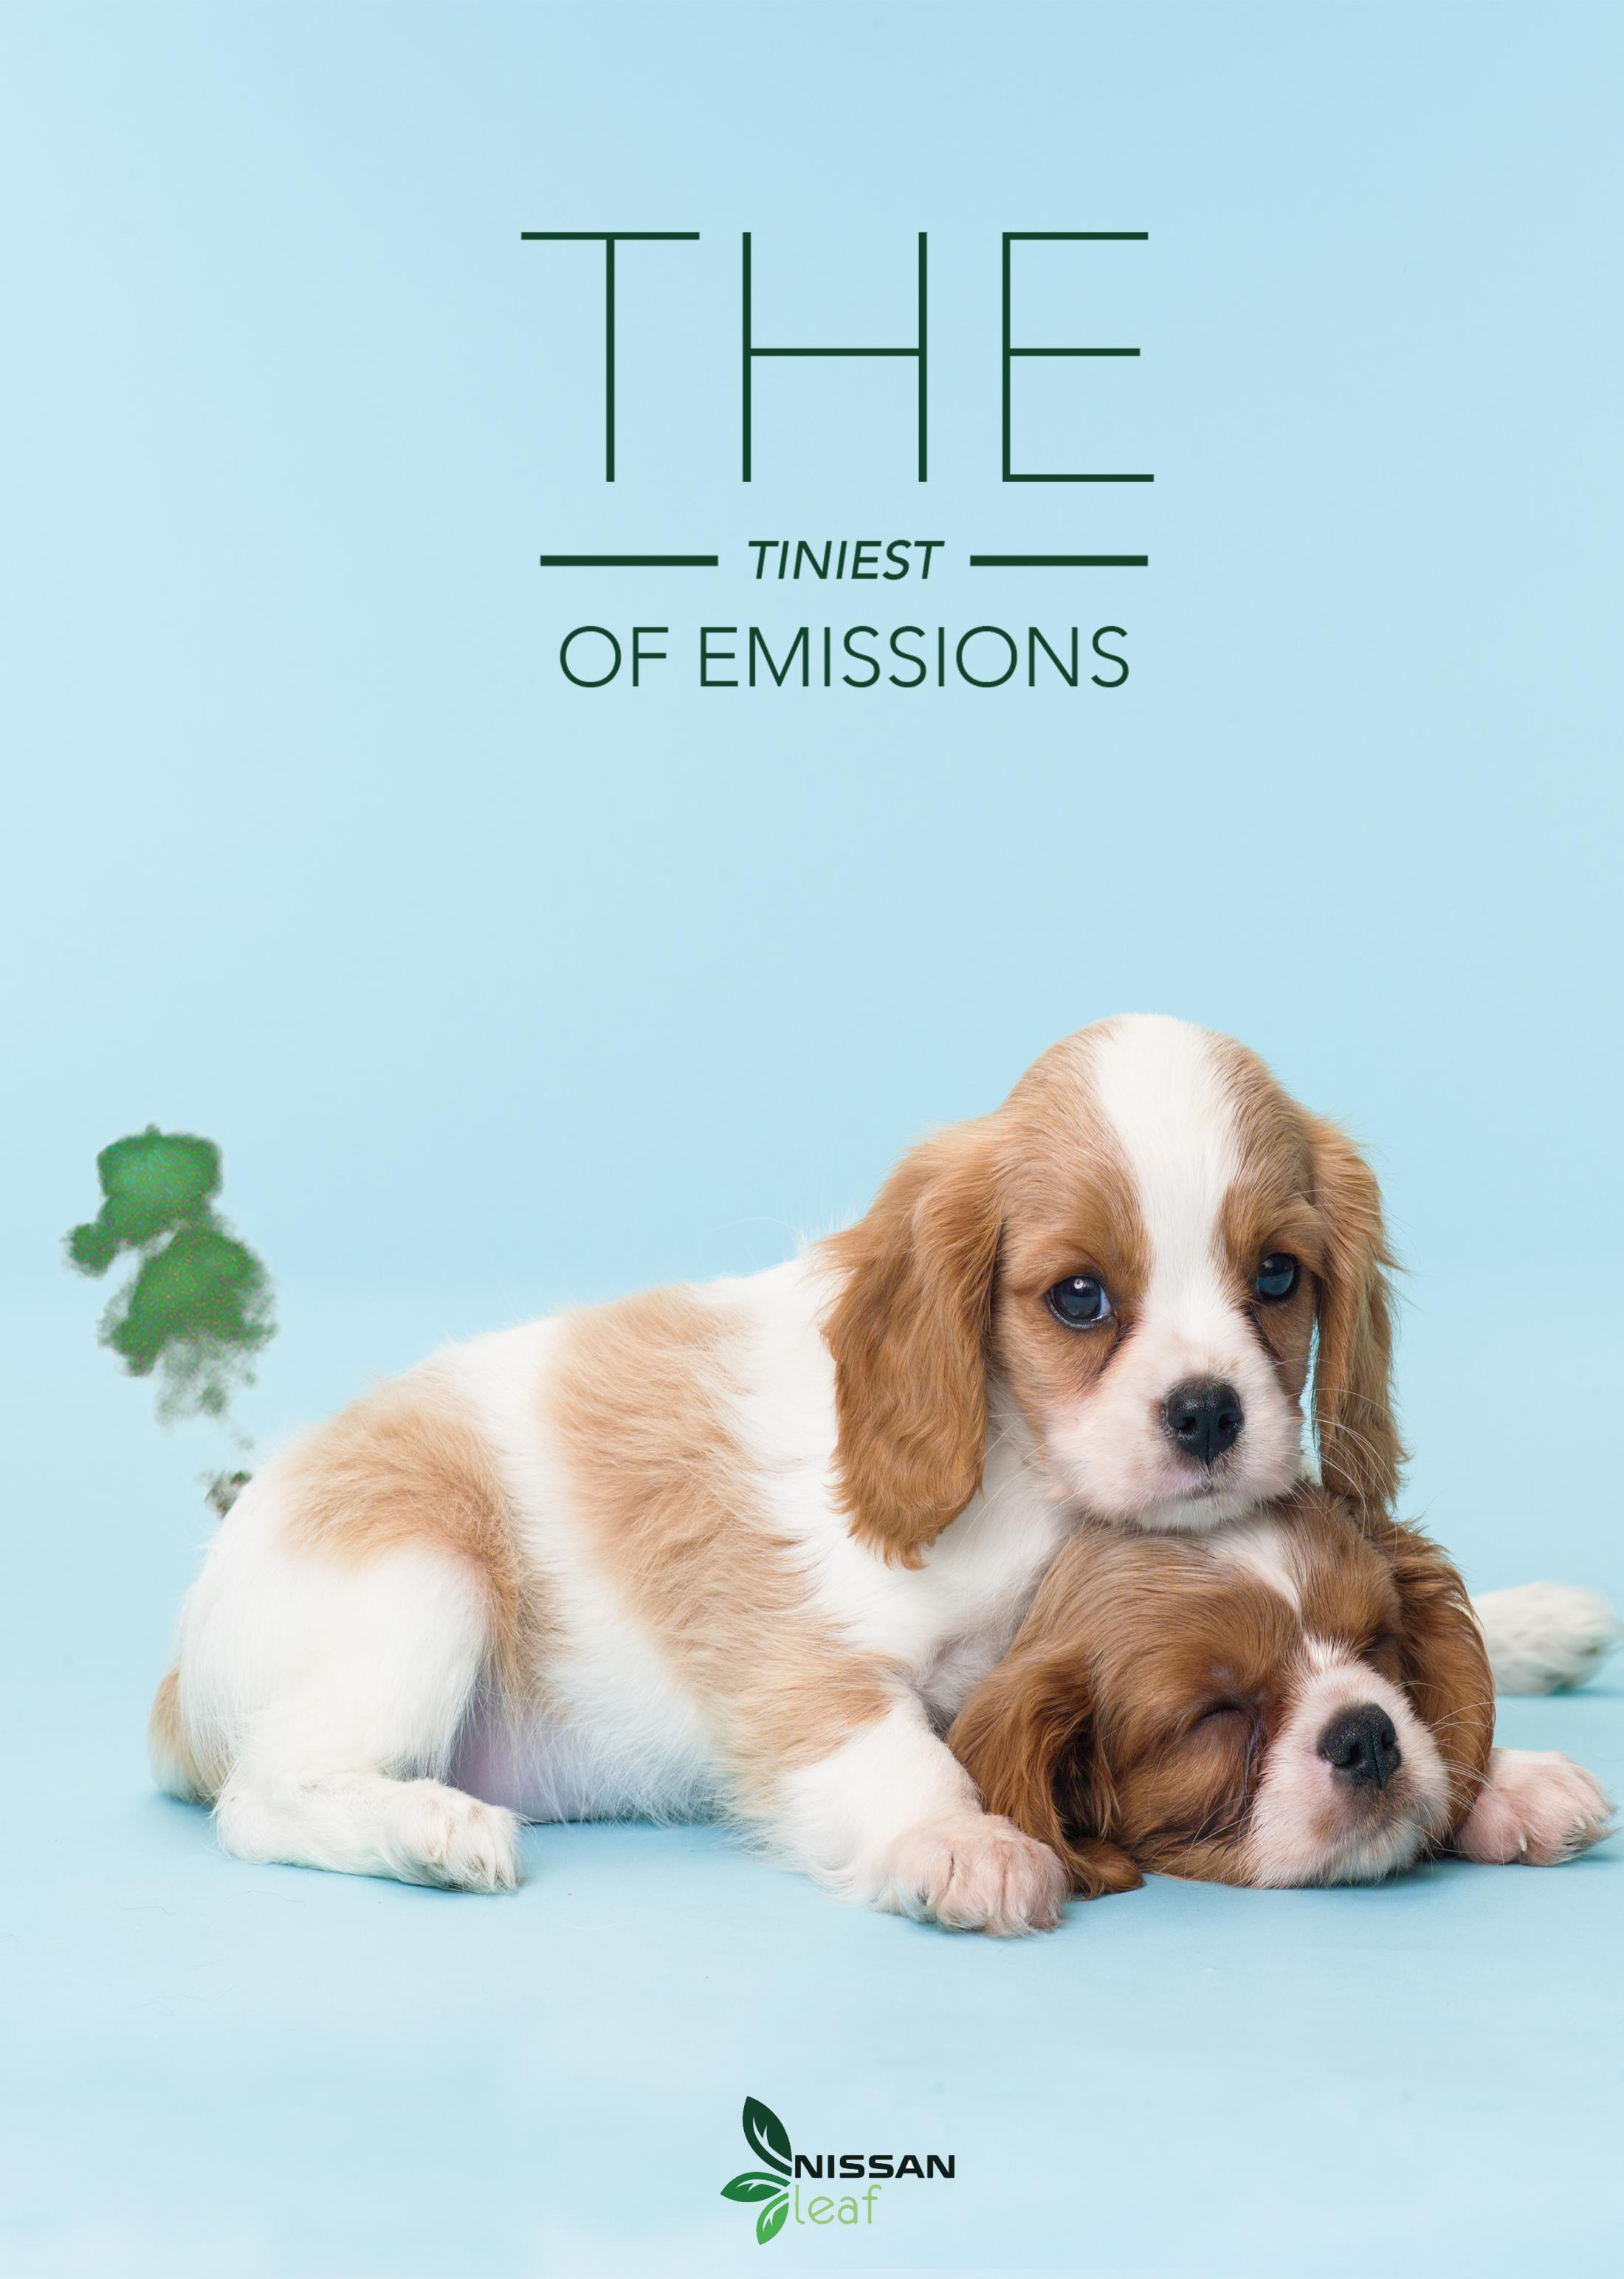 Nissan Print Ad - The Tiniest of Emissions, 3